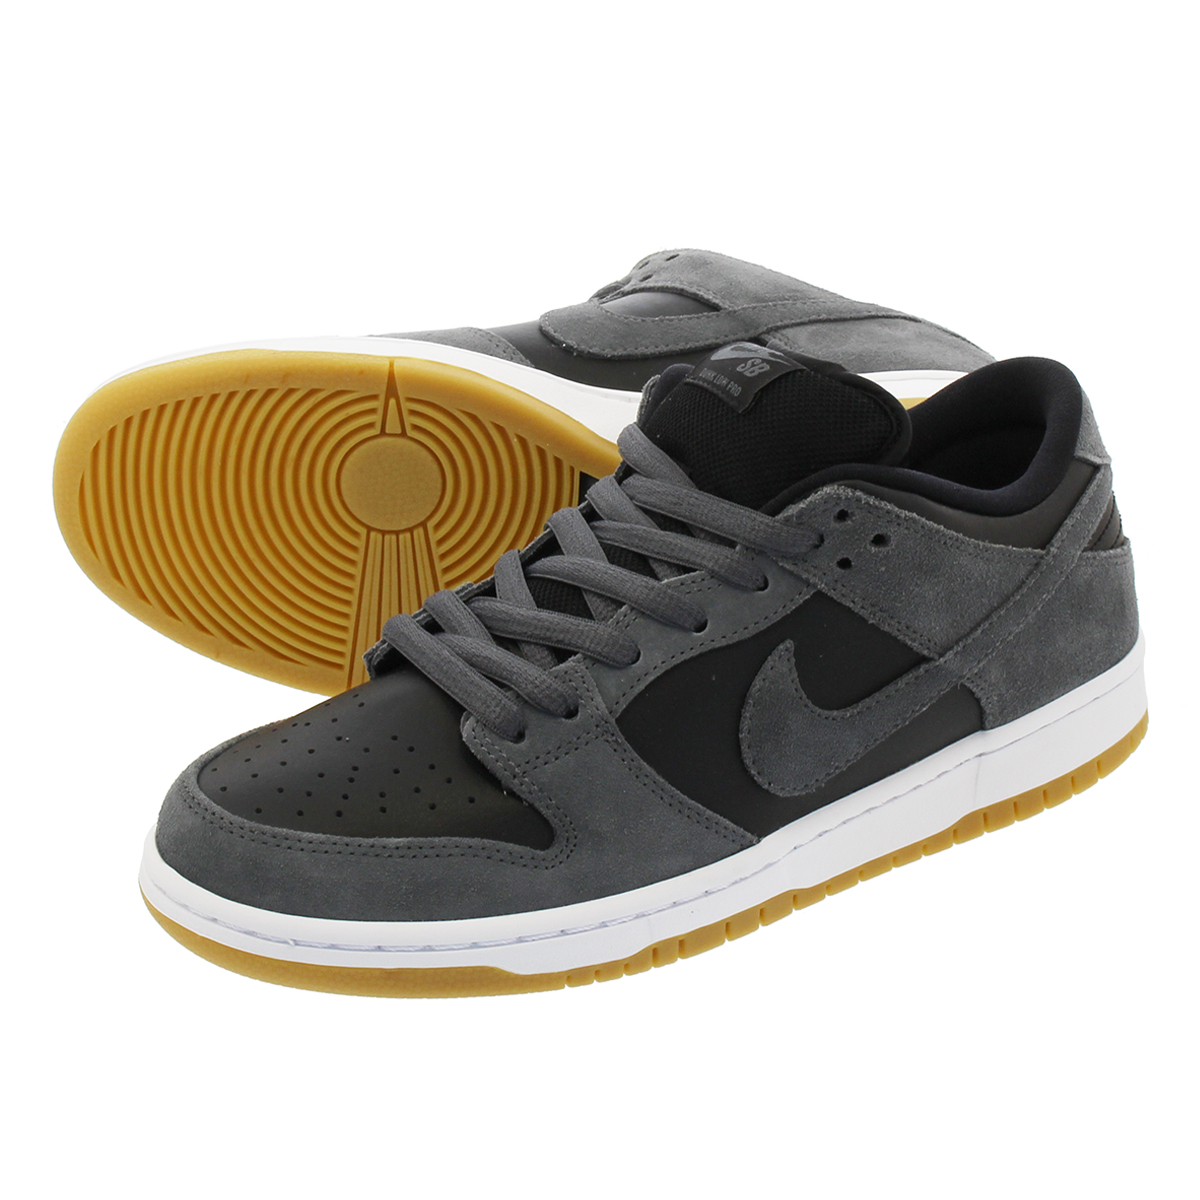 brand new 4b71e 2d8b3 ... czech nike sb dunk low trd nike sb dunk low trd dark grey black white  gum